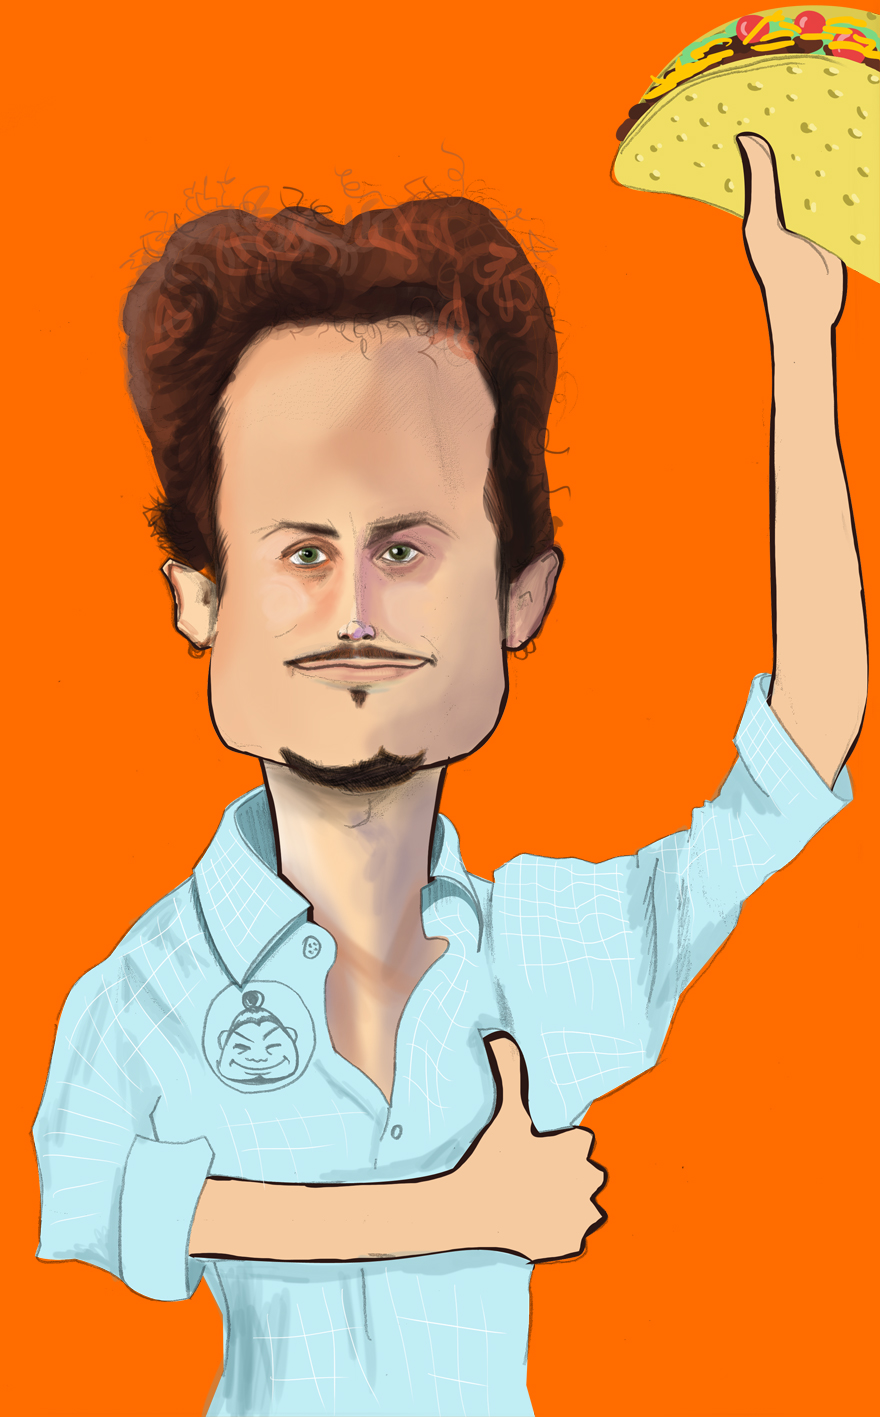 Noah Kagan Caricature